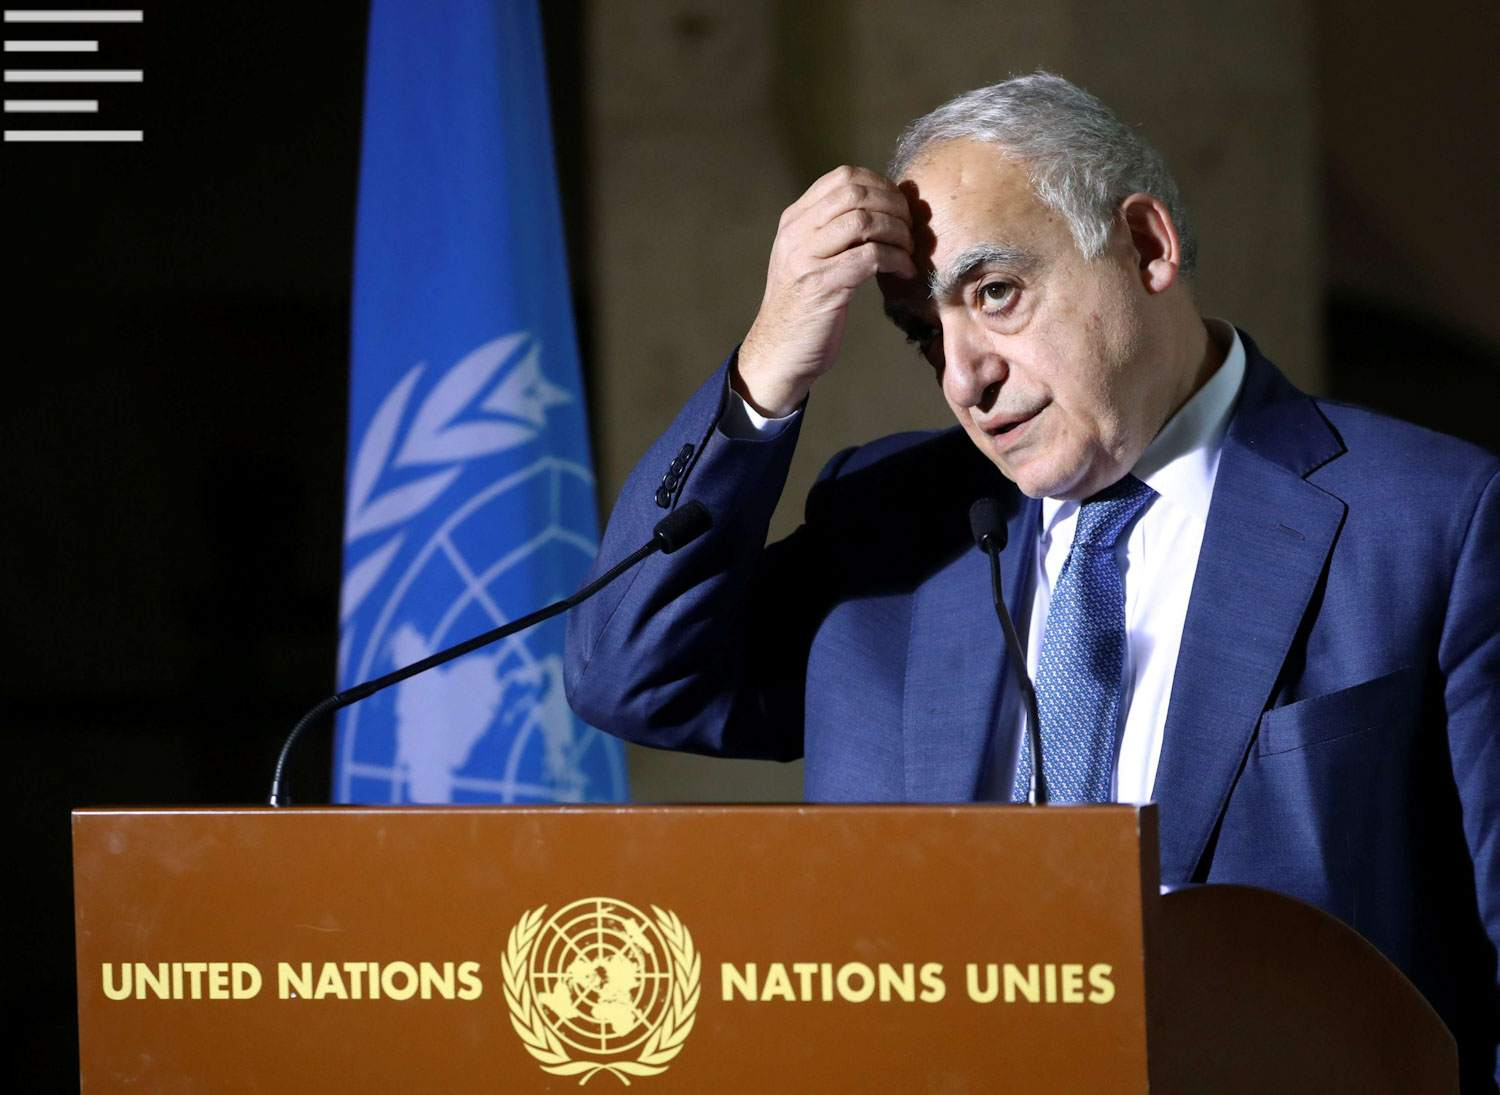 UN Envoy for Libya, Ghassan Salame holds a news briefing after a meeting of the 5+5 Libyan Joint Military Commission in Geneva, Switzerland, February 6. (Reuters)